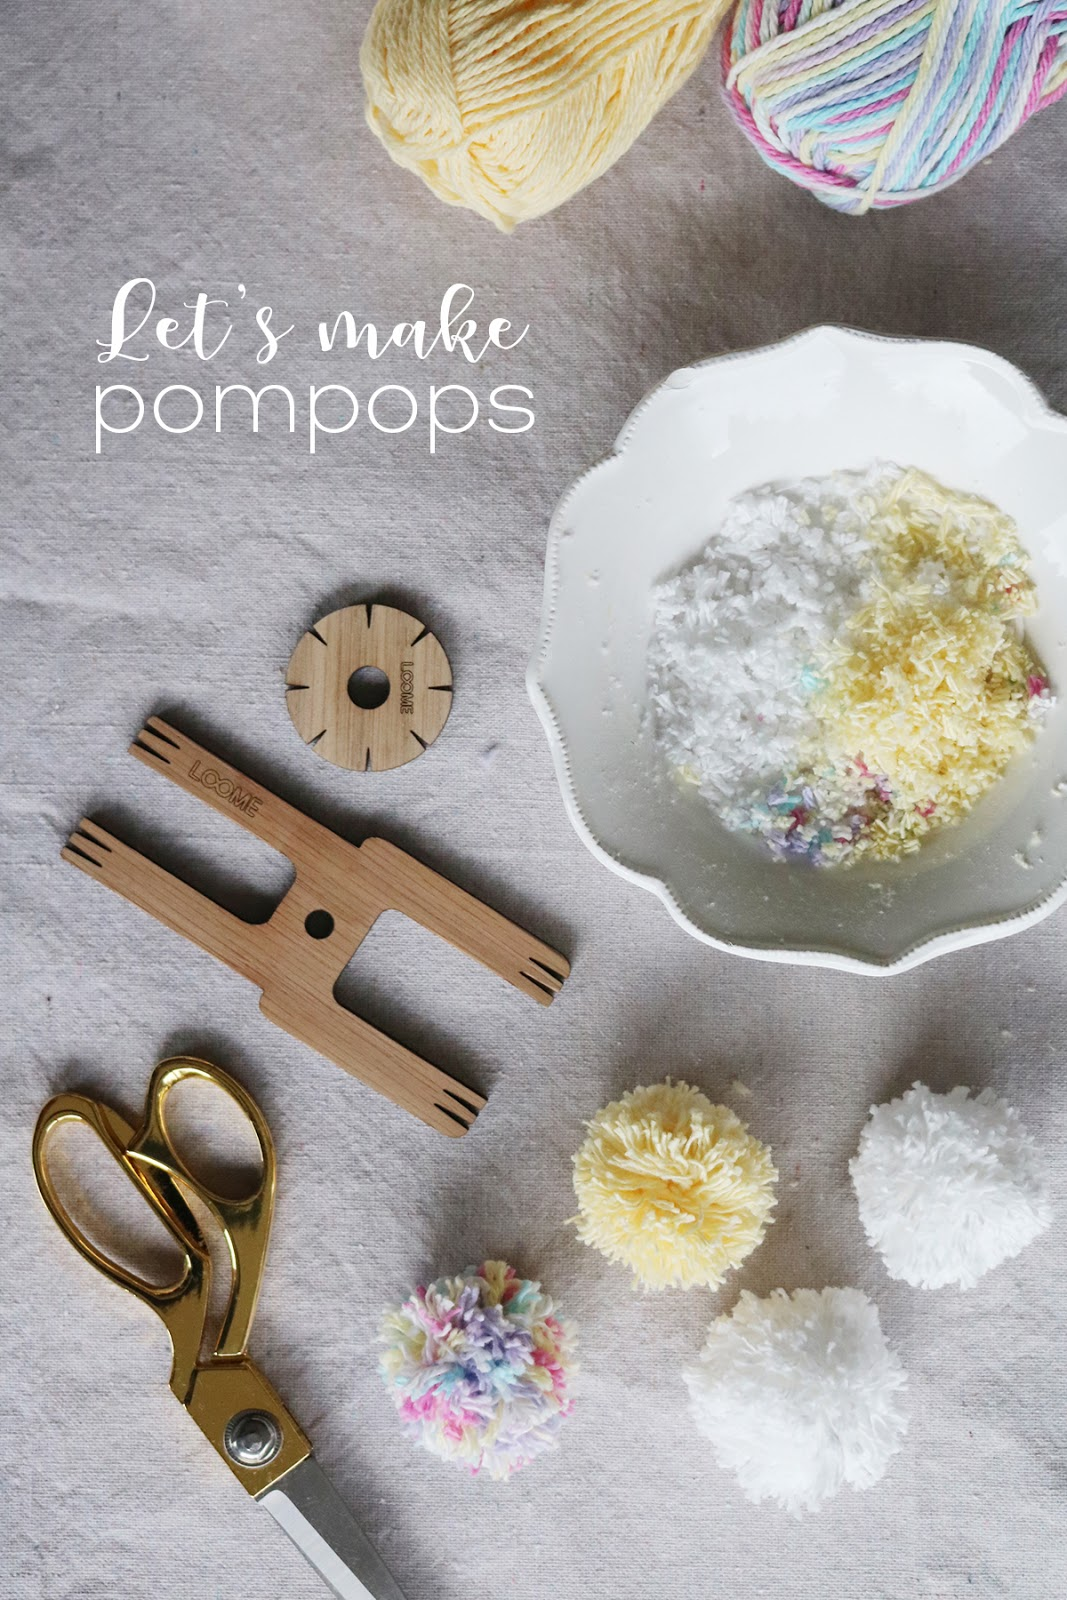 Let's make pom poms using The Loome Tools | Lorrie Everitt Studio